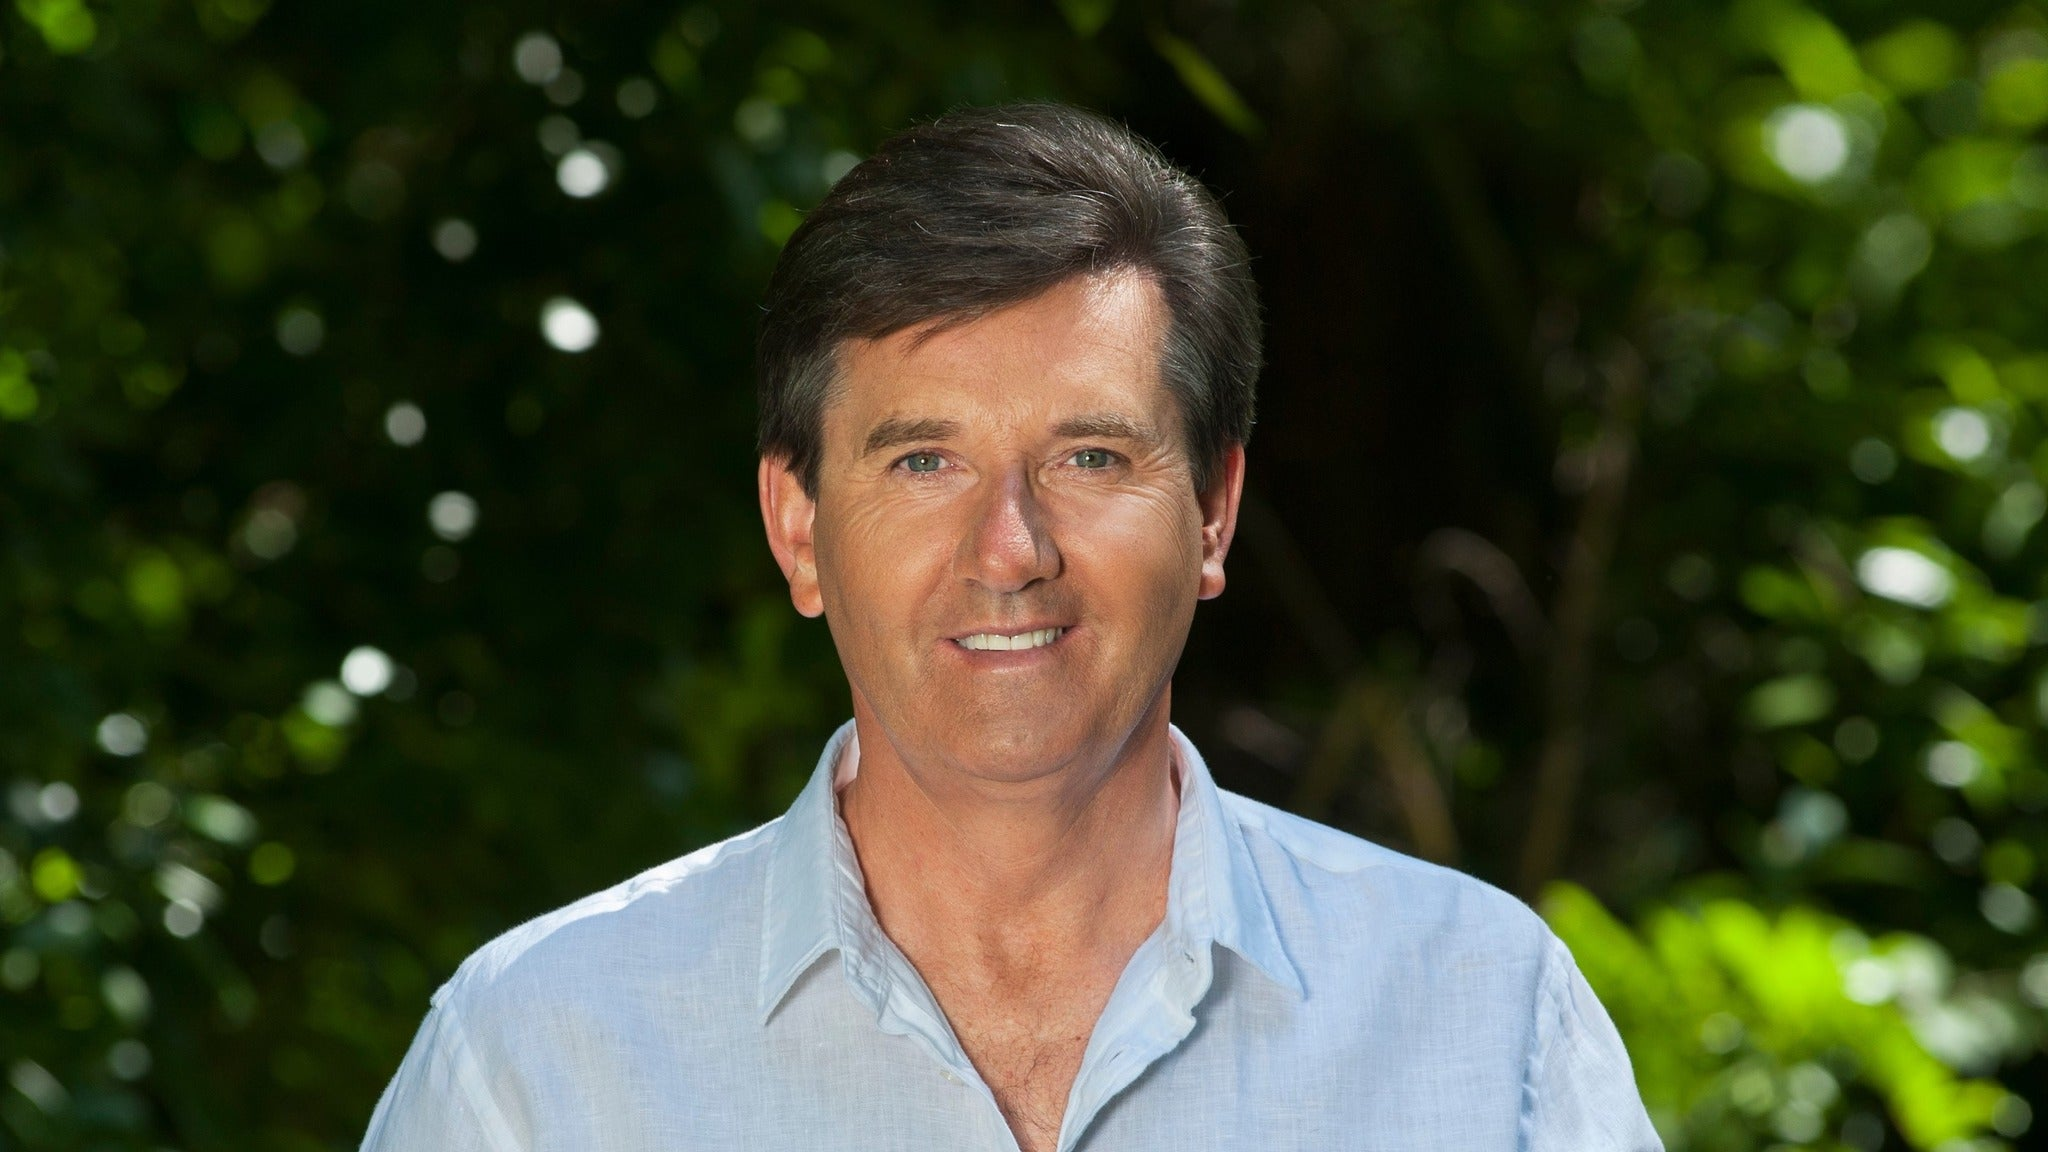 Daniel O'Donnell at Norsk Hostfest